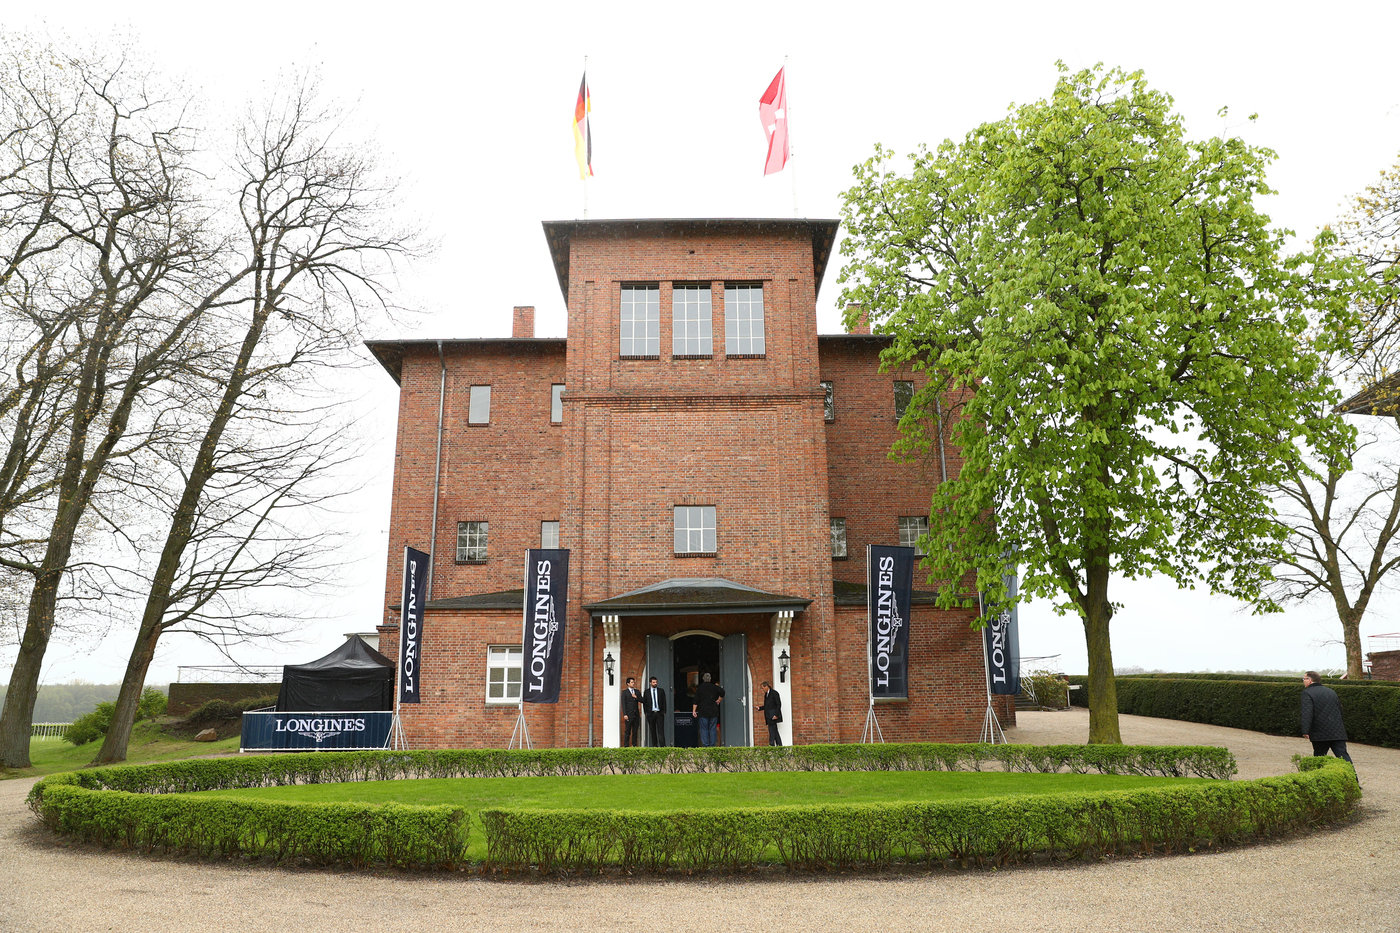 Longines Flat Racing Event: Longines presented its exclusive offer in sports timing services including a brand new application 11